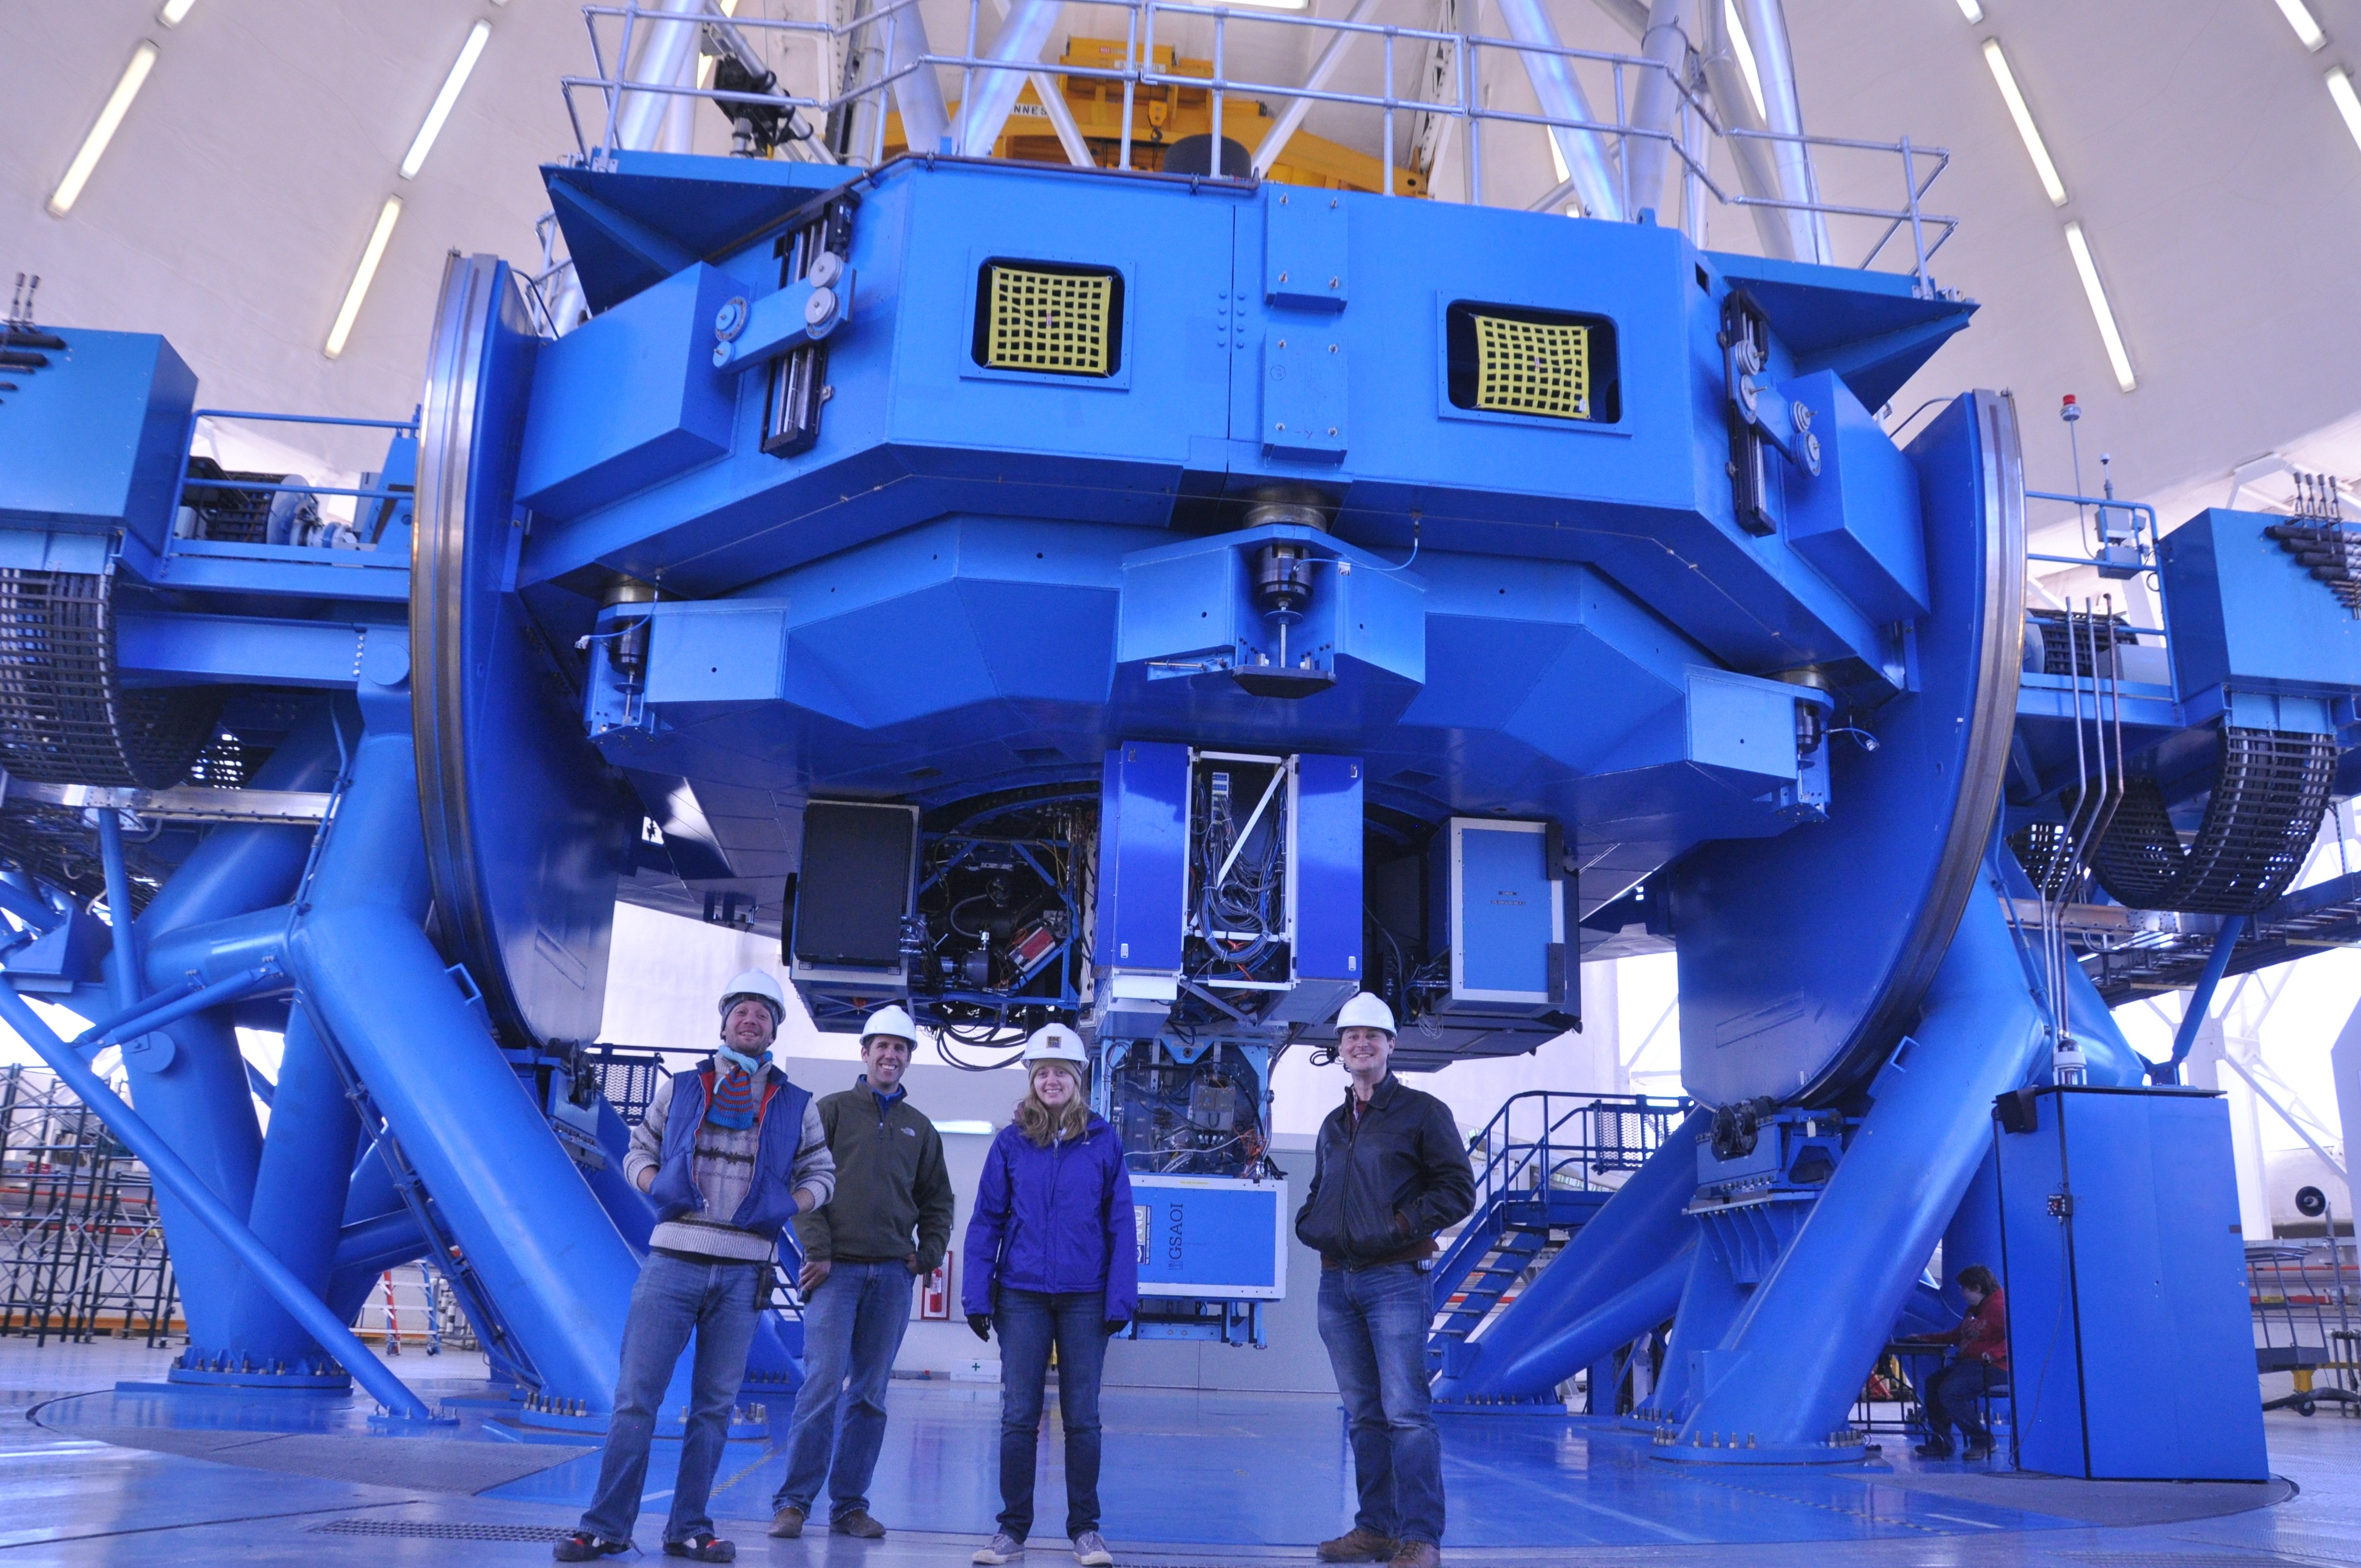 Some of the members of the GPI team in front of the Cassegrain focus of the Gemini South Telescope equipped with the GPI instrument. (credit: M. Perrin)